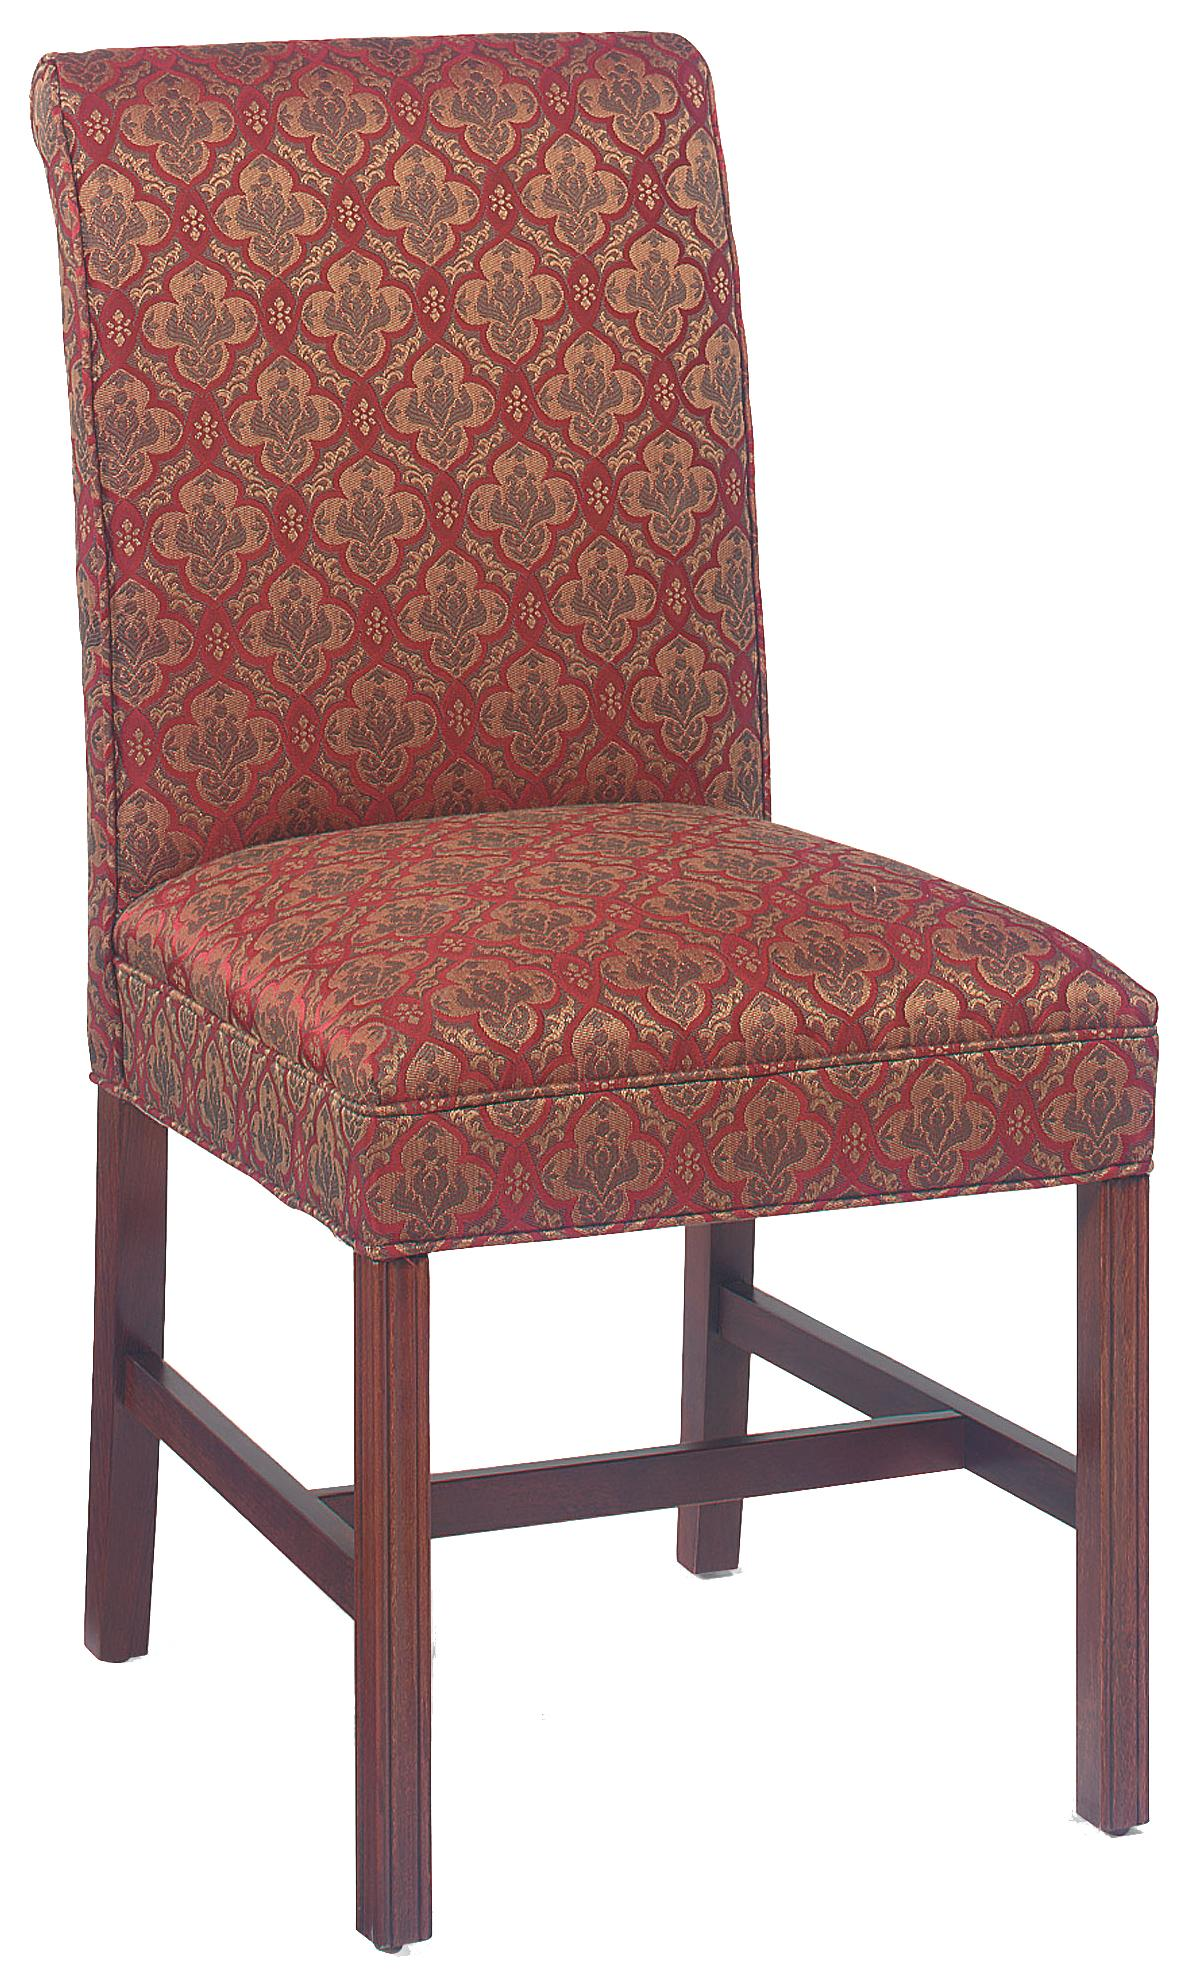 Fairfield Chairs Armless Chair - Item Number: 1060-01